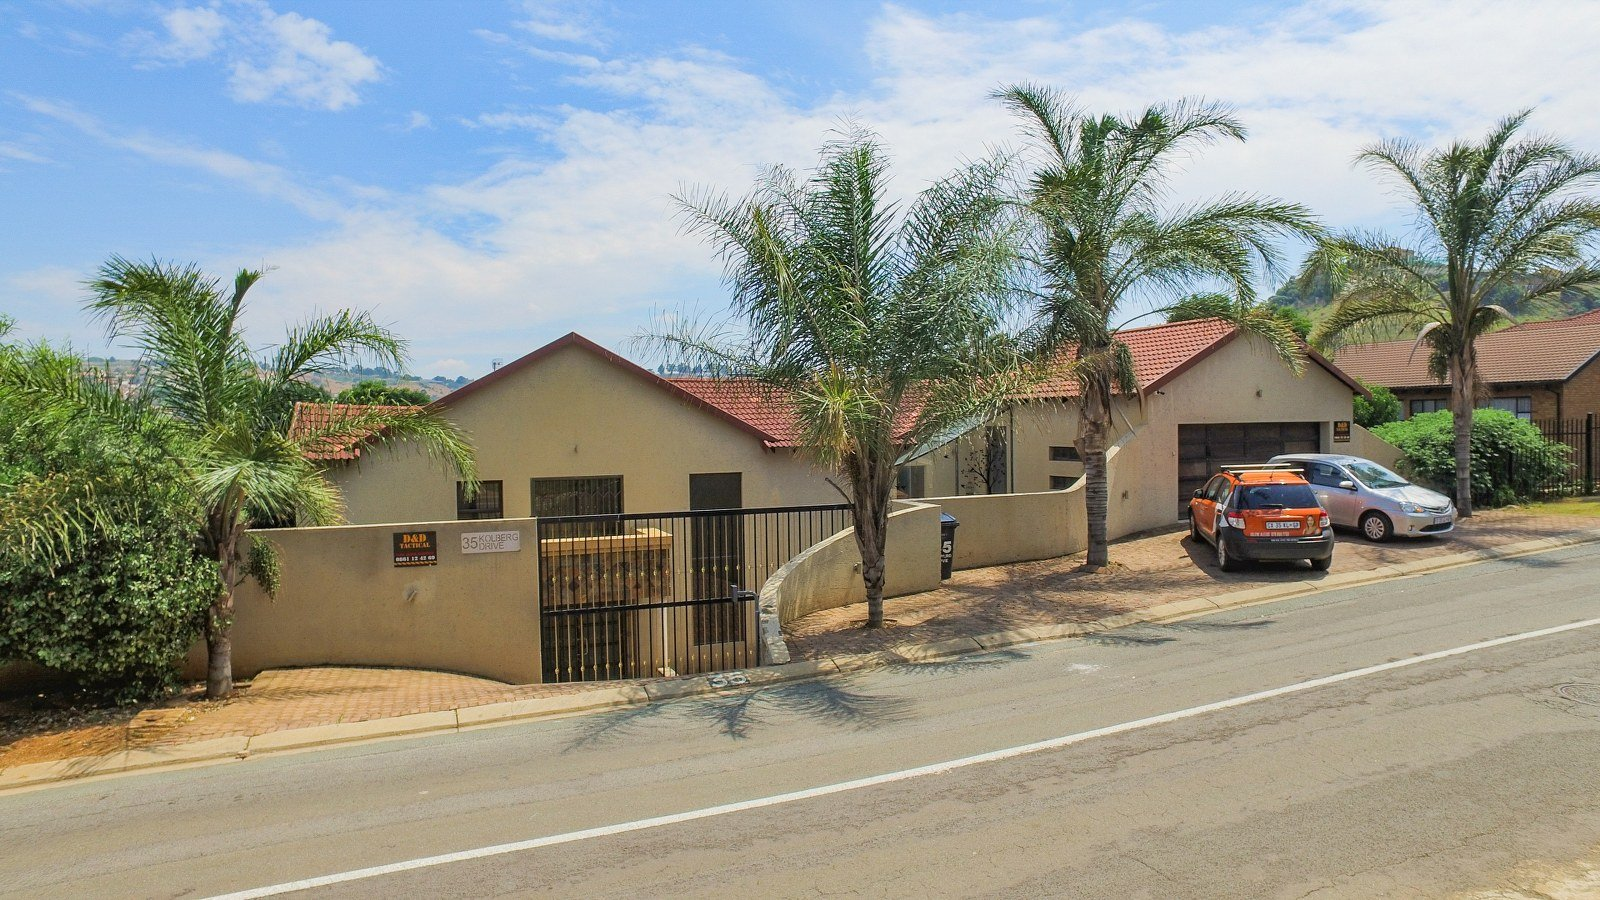 Johannesburg, Glenvista Property  | Houses For Sale Glenvista, Glenvista, House 5 bedrooms property for sale Price:5,900,000